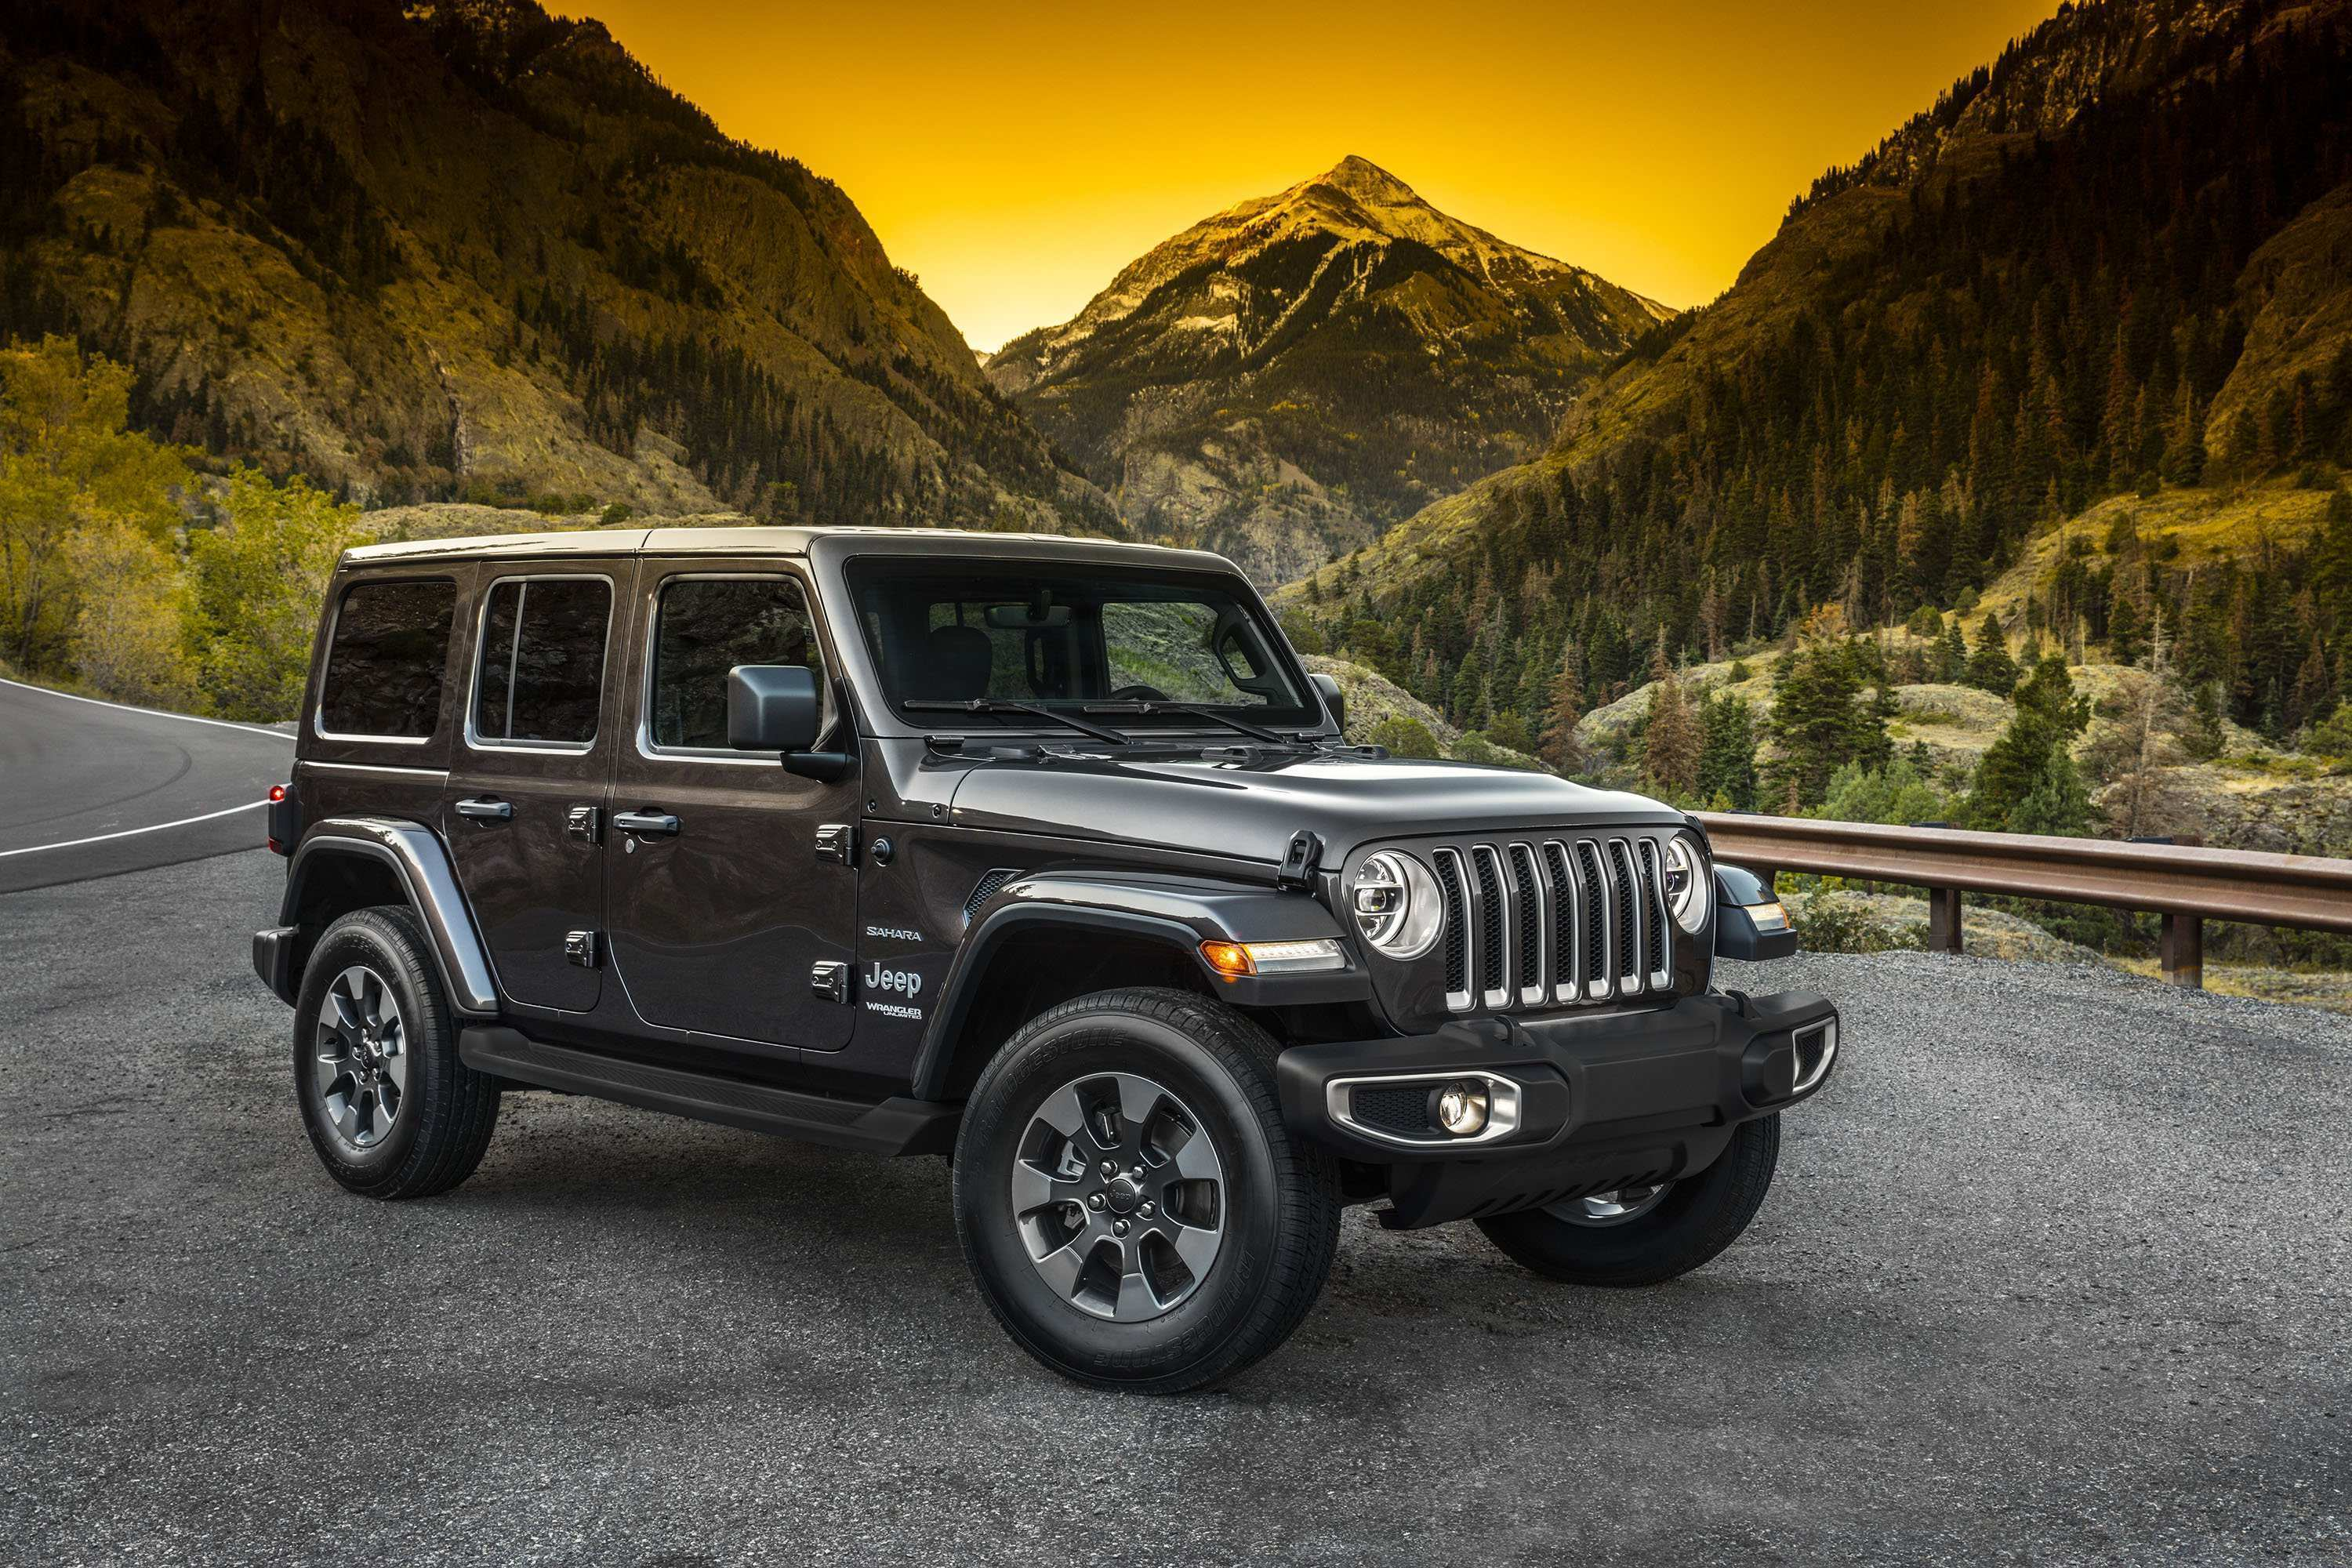 21 All New 2019 Vs 2020 Jeep Wrangler Wallpaper